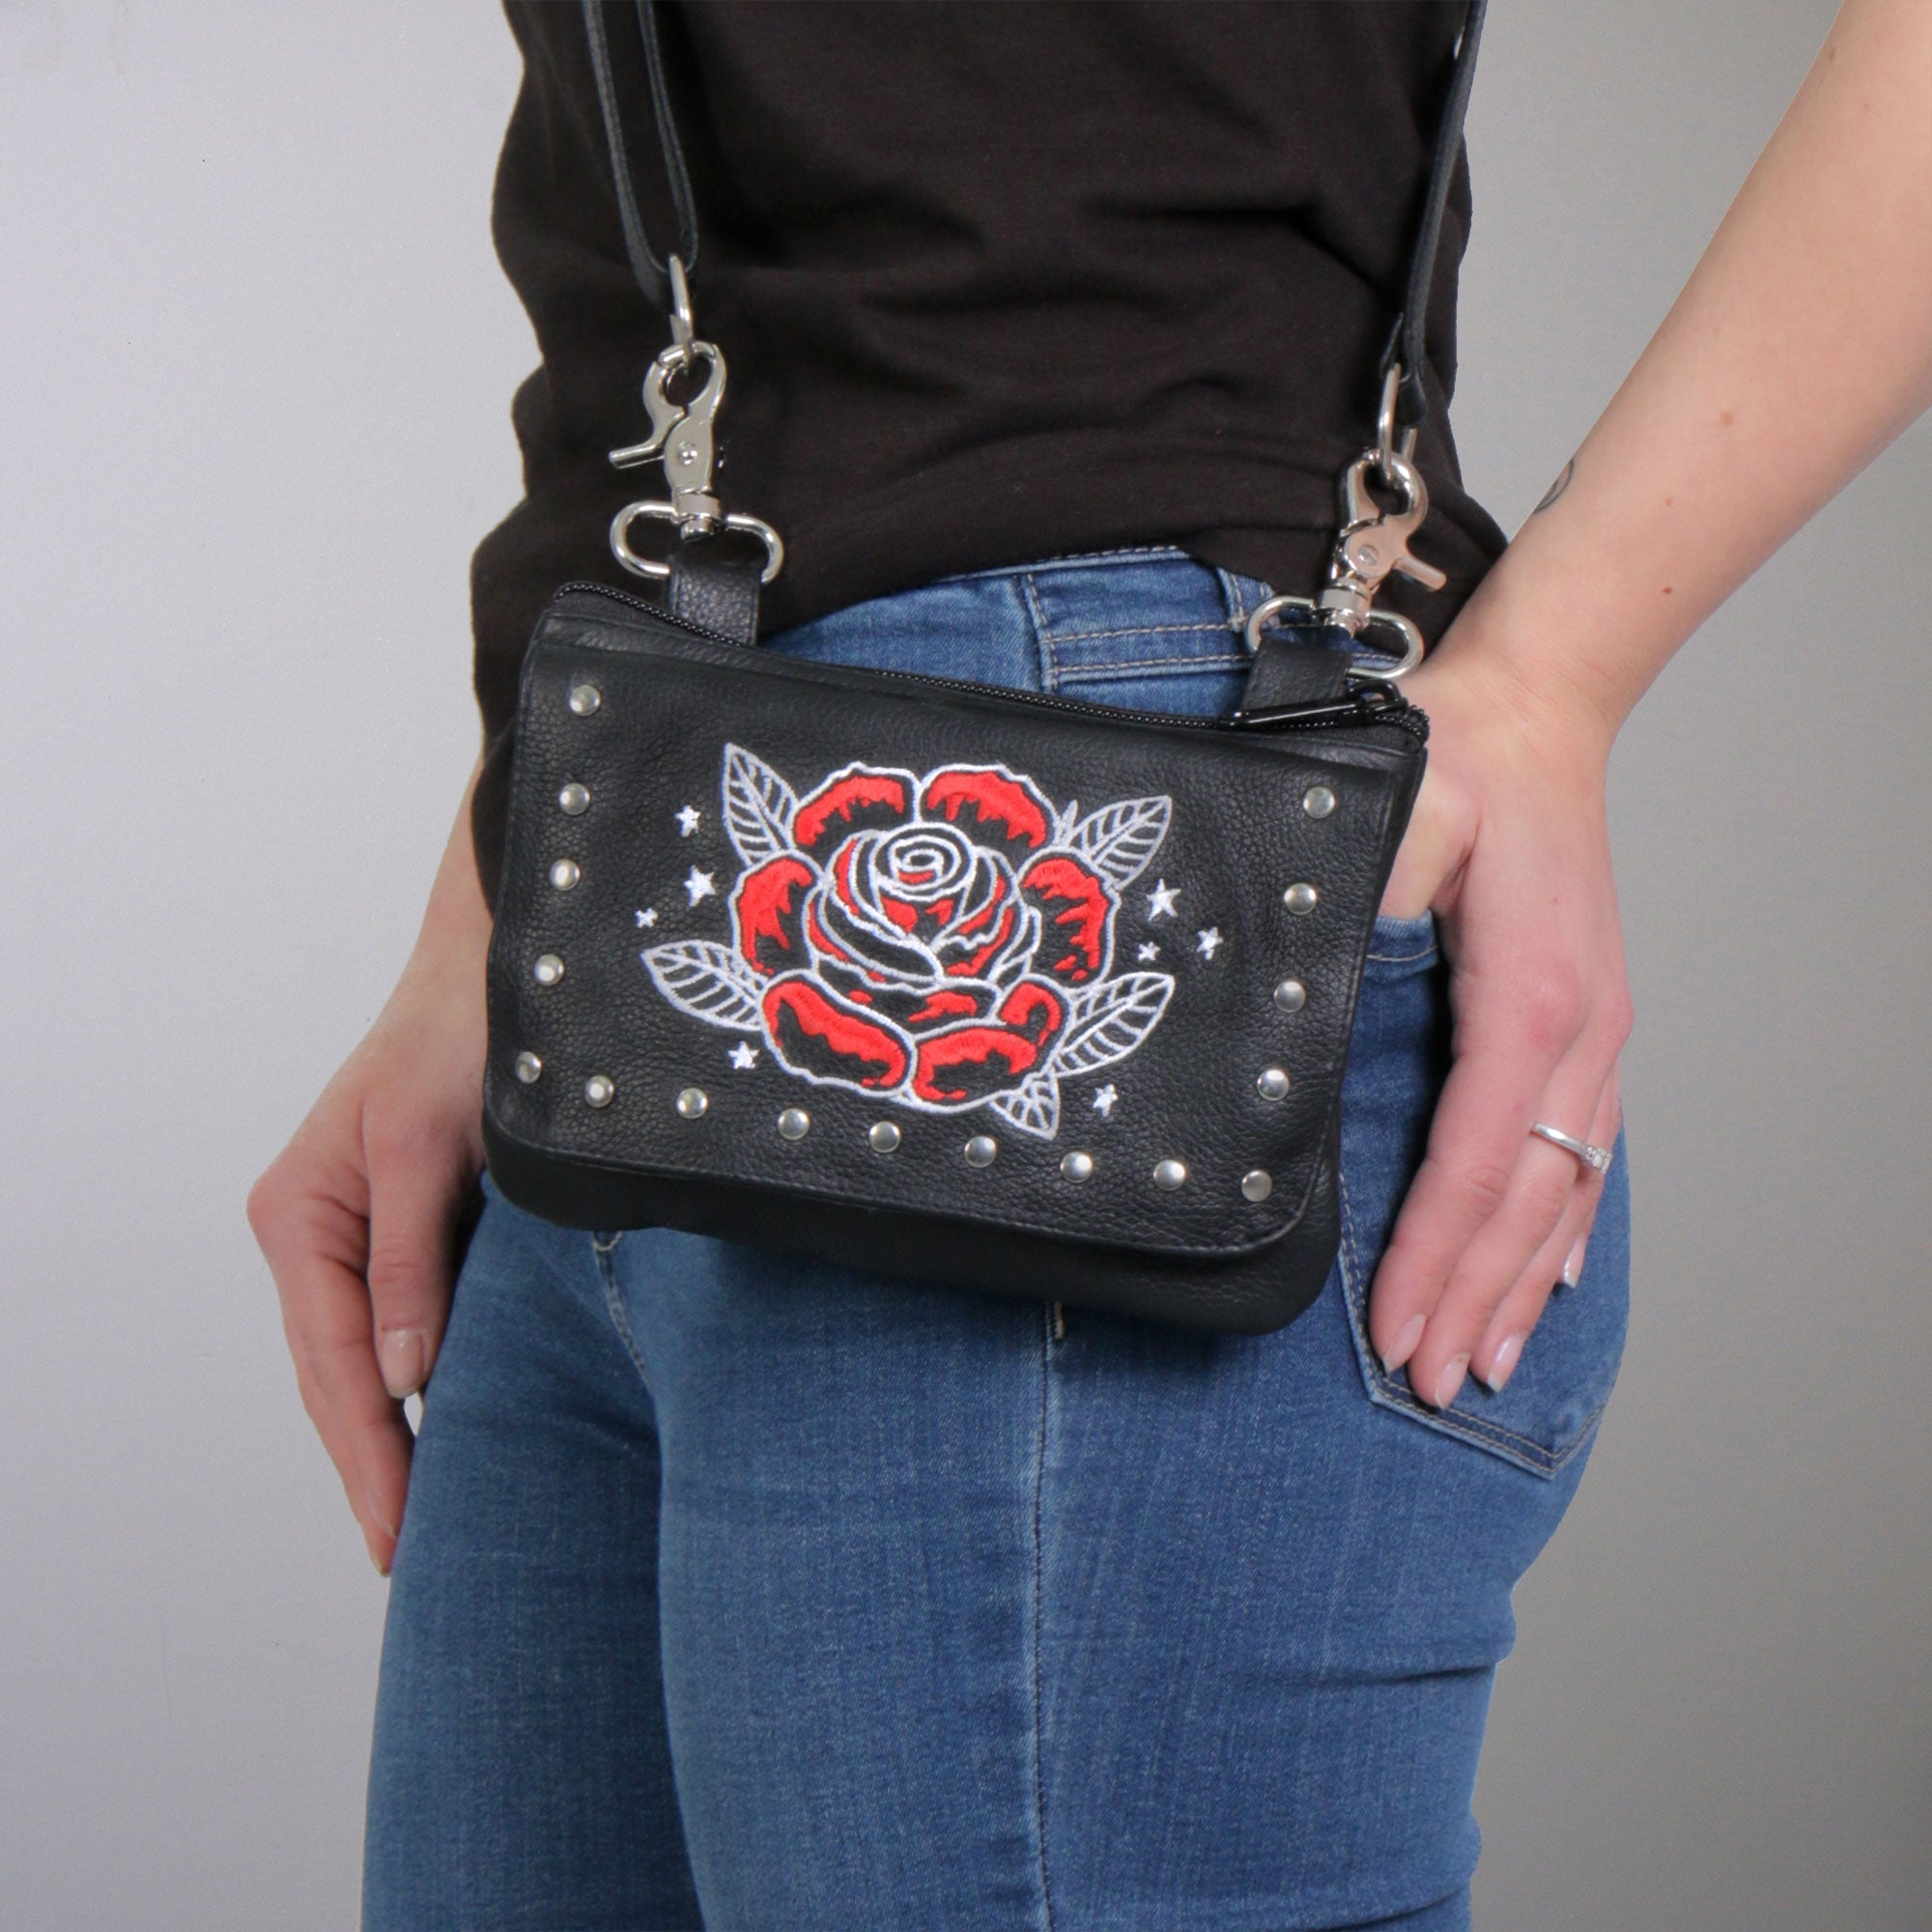 Hot Leathers Embroidered Clip Pouch Purse with Rose and Stars